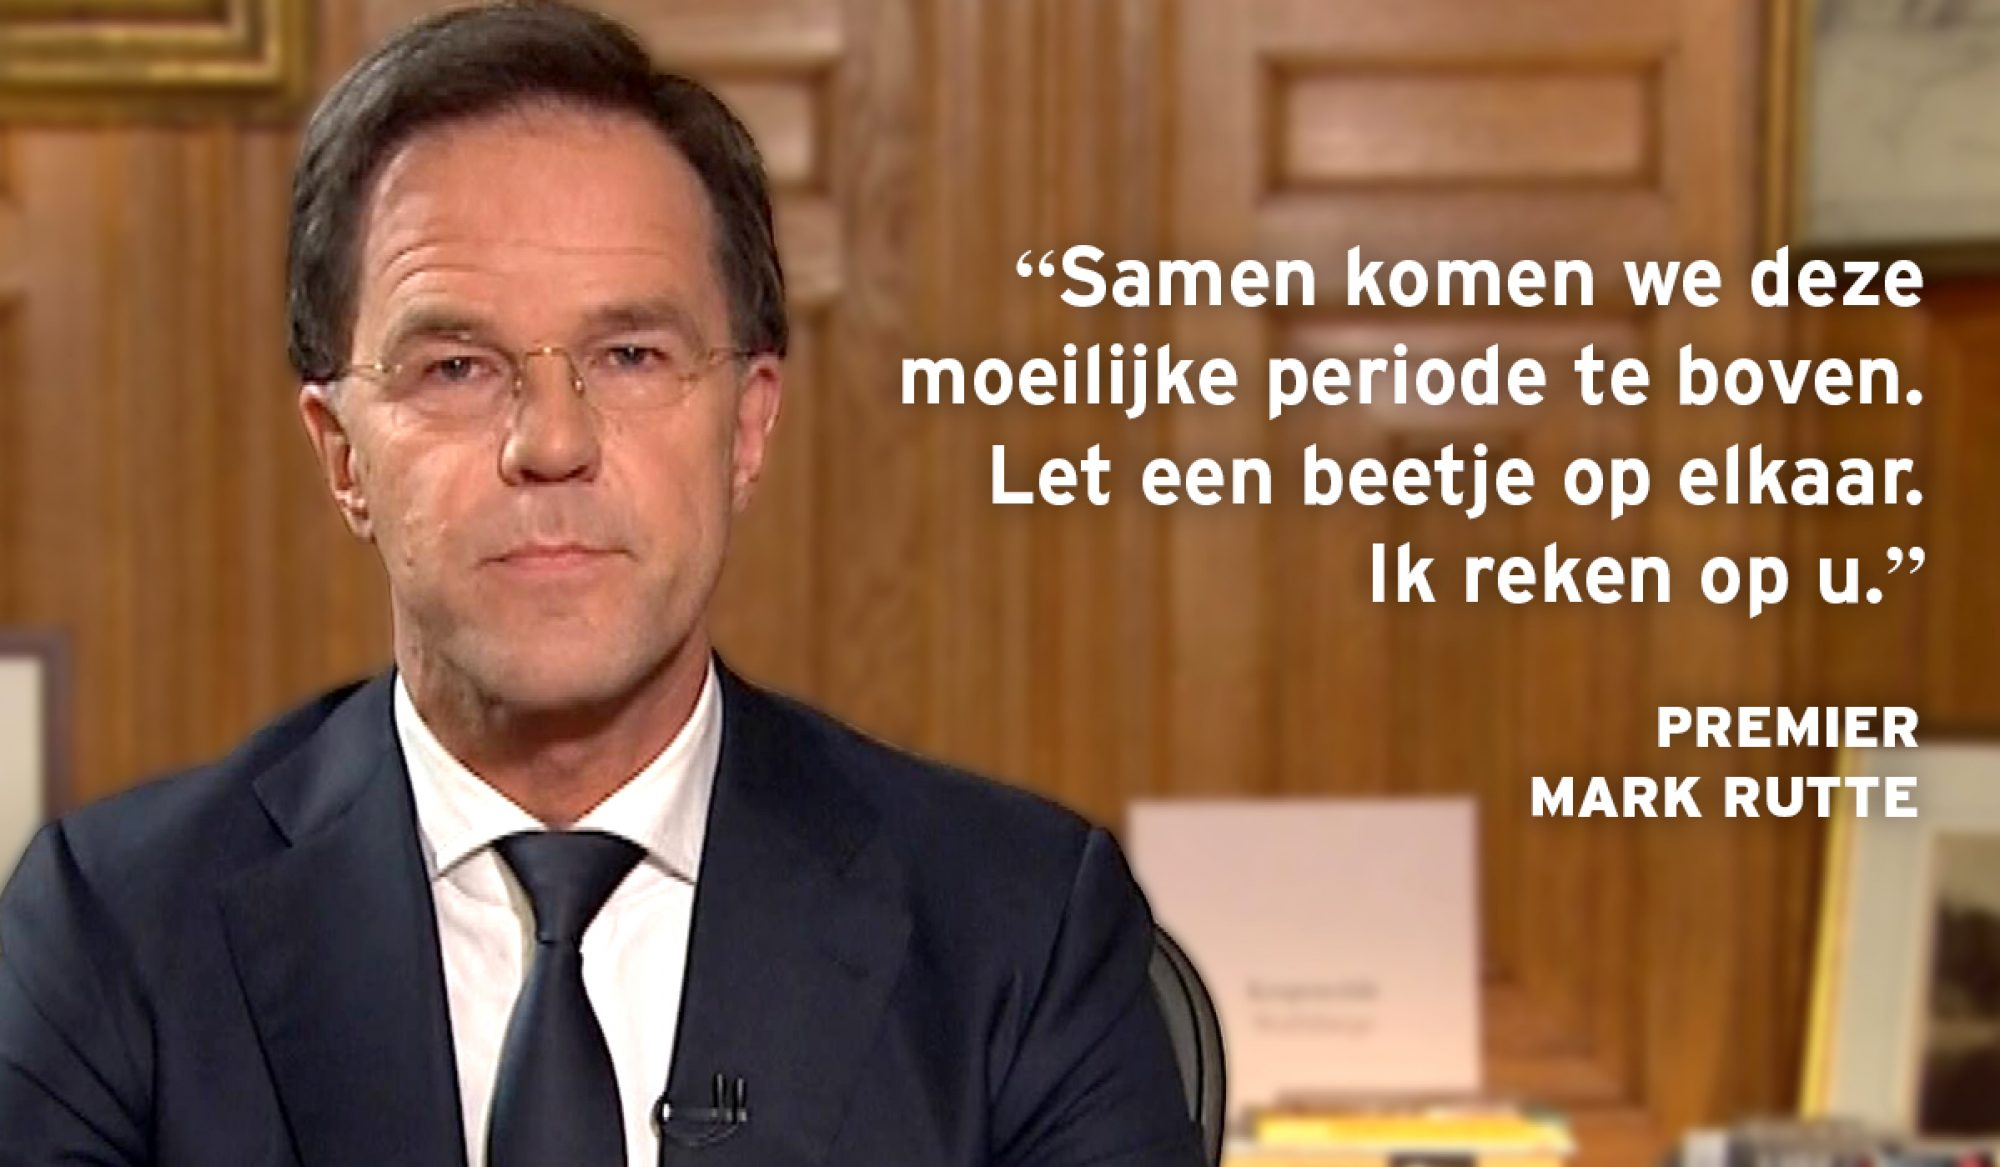 Speech Mark Rutte coronacrisis quote